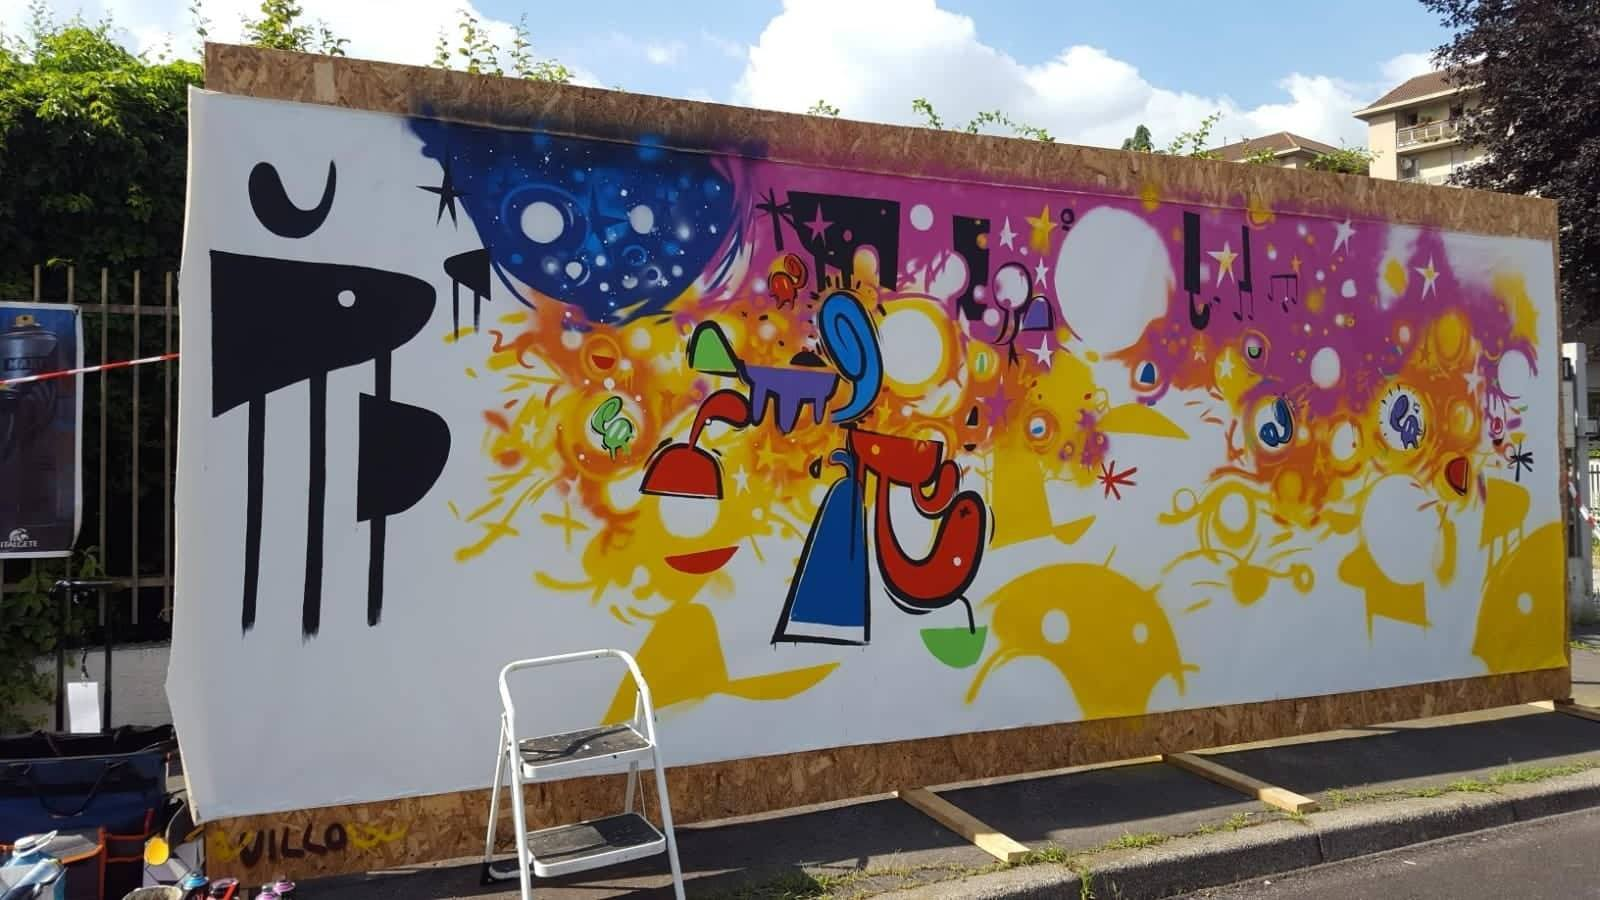 Willow al Looperfest & Zuartday 2018 - Work in progress